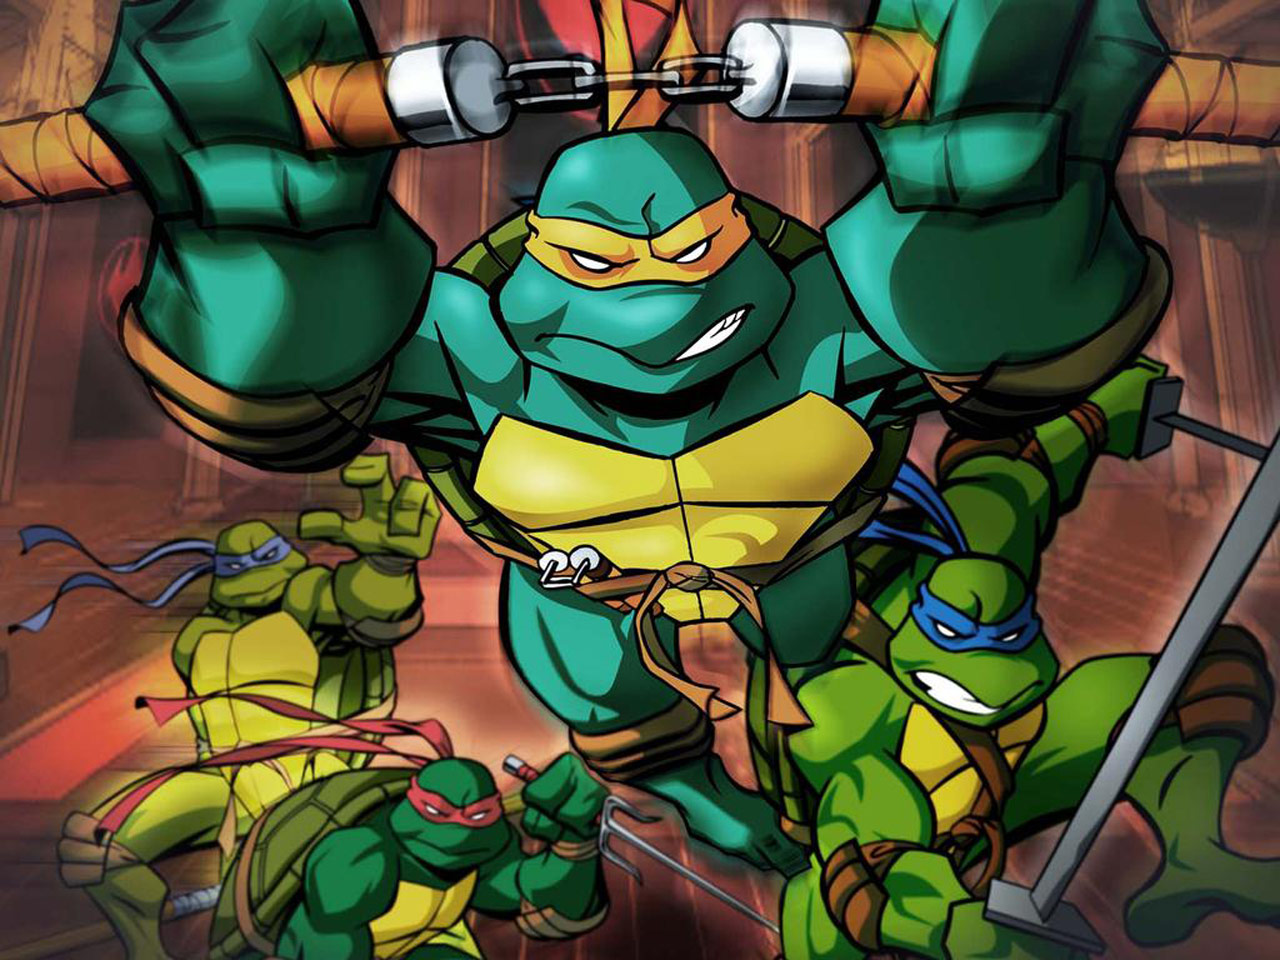 TMNT wallpaper 2003-2009 series (32)